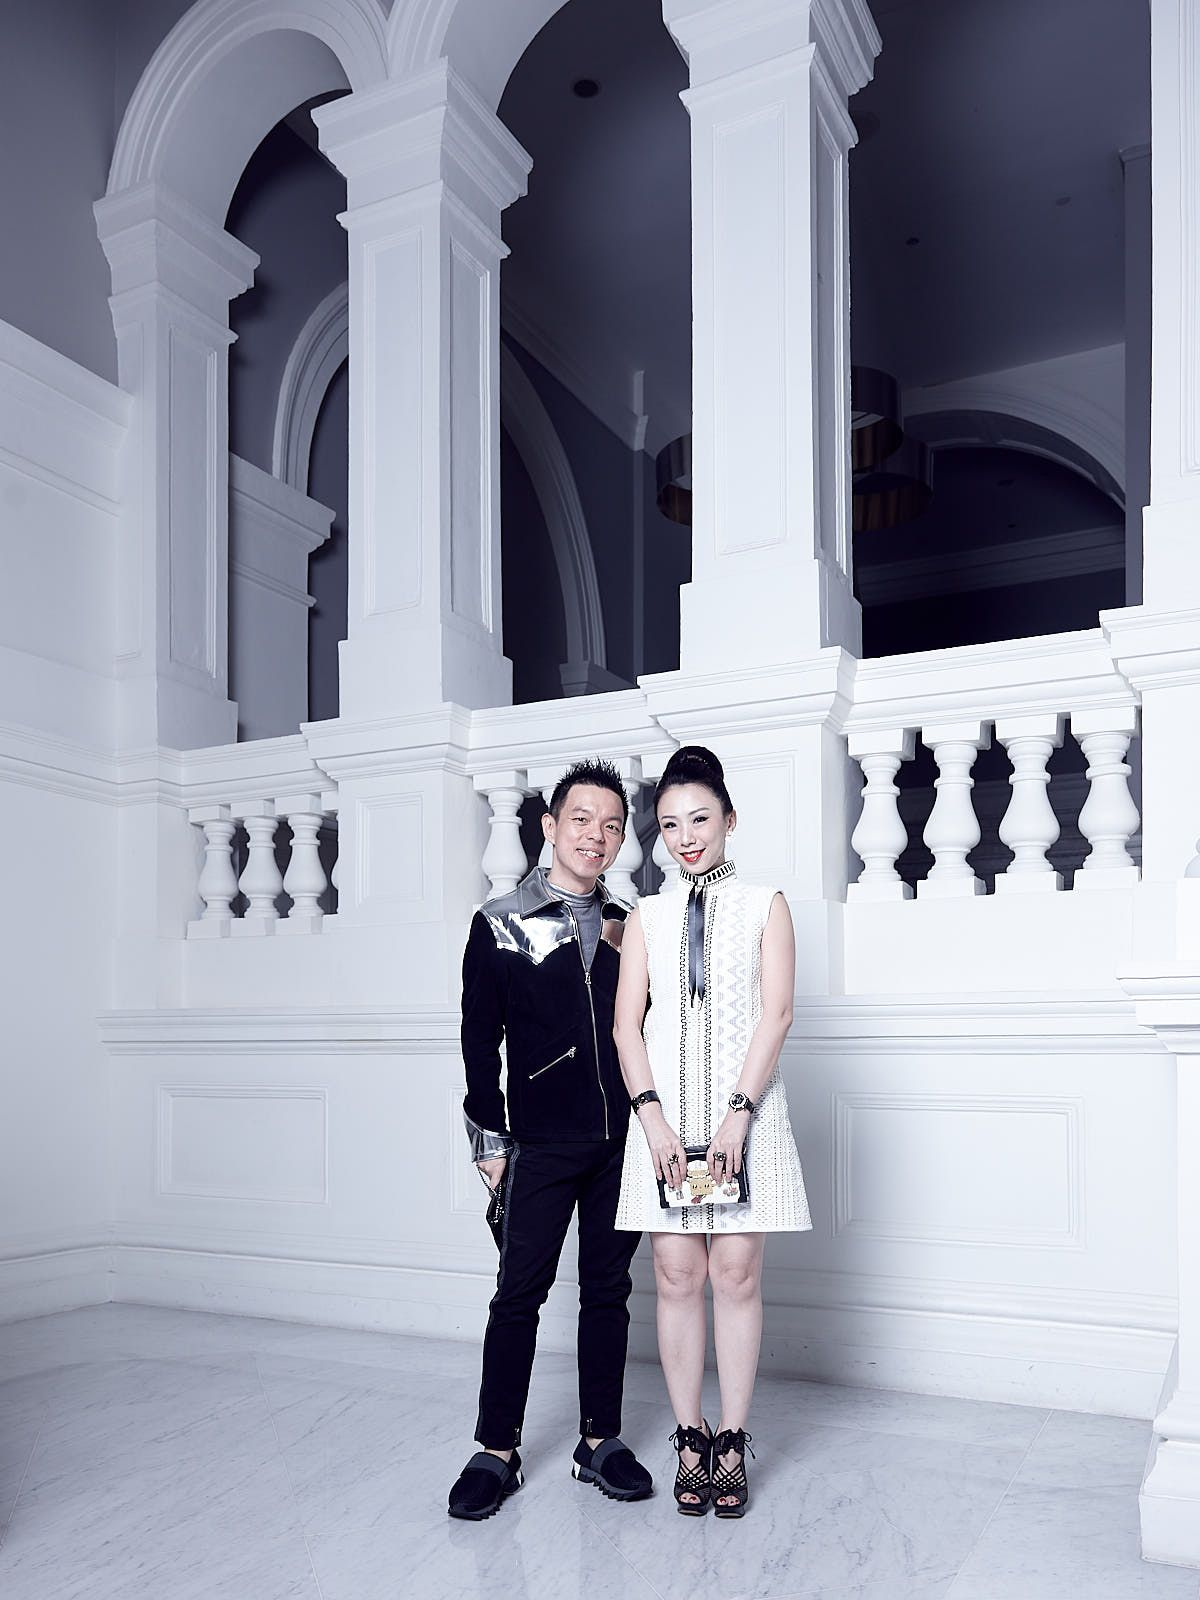 Adrian Ng in Maison Margiela & Off-White, Loh May-Han in Louis Vuitton